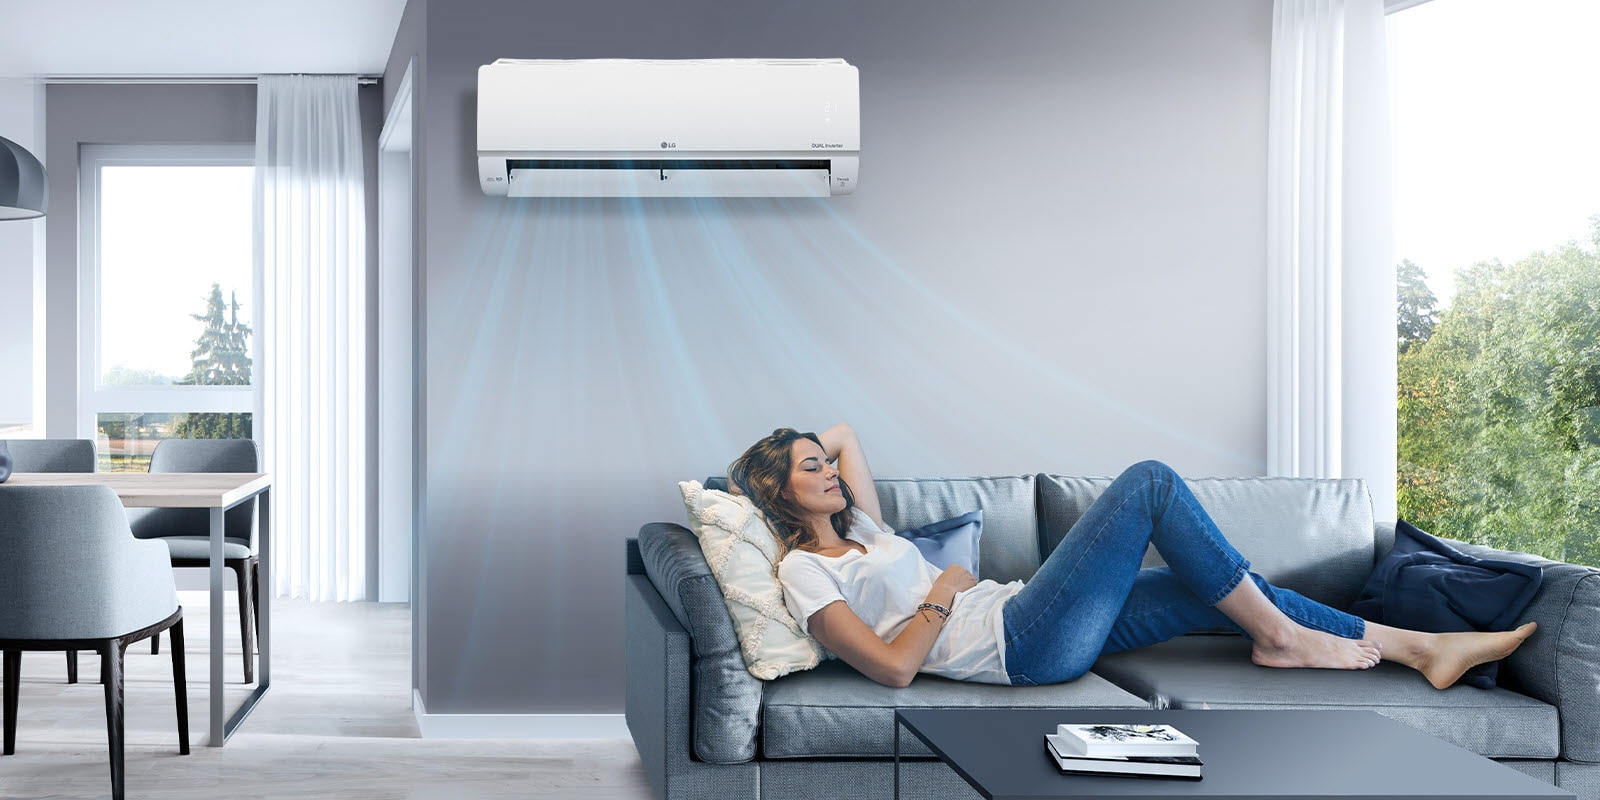 A woman lounges on a couch in a living room with the LG air conditioner installed above her on the wall. Blue streams of air are on the image to indicate it is on and cooling the room.